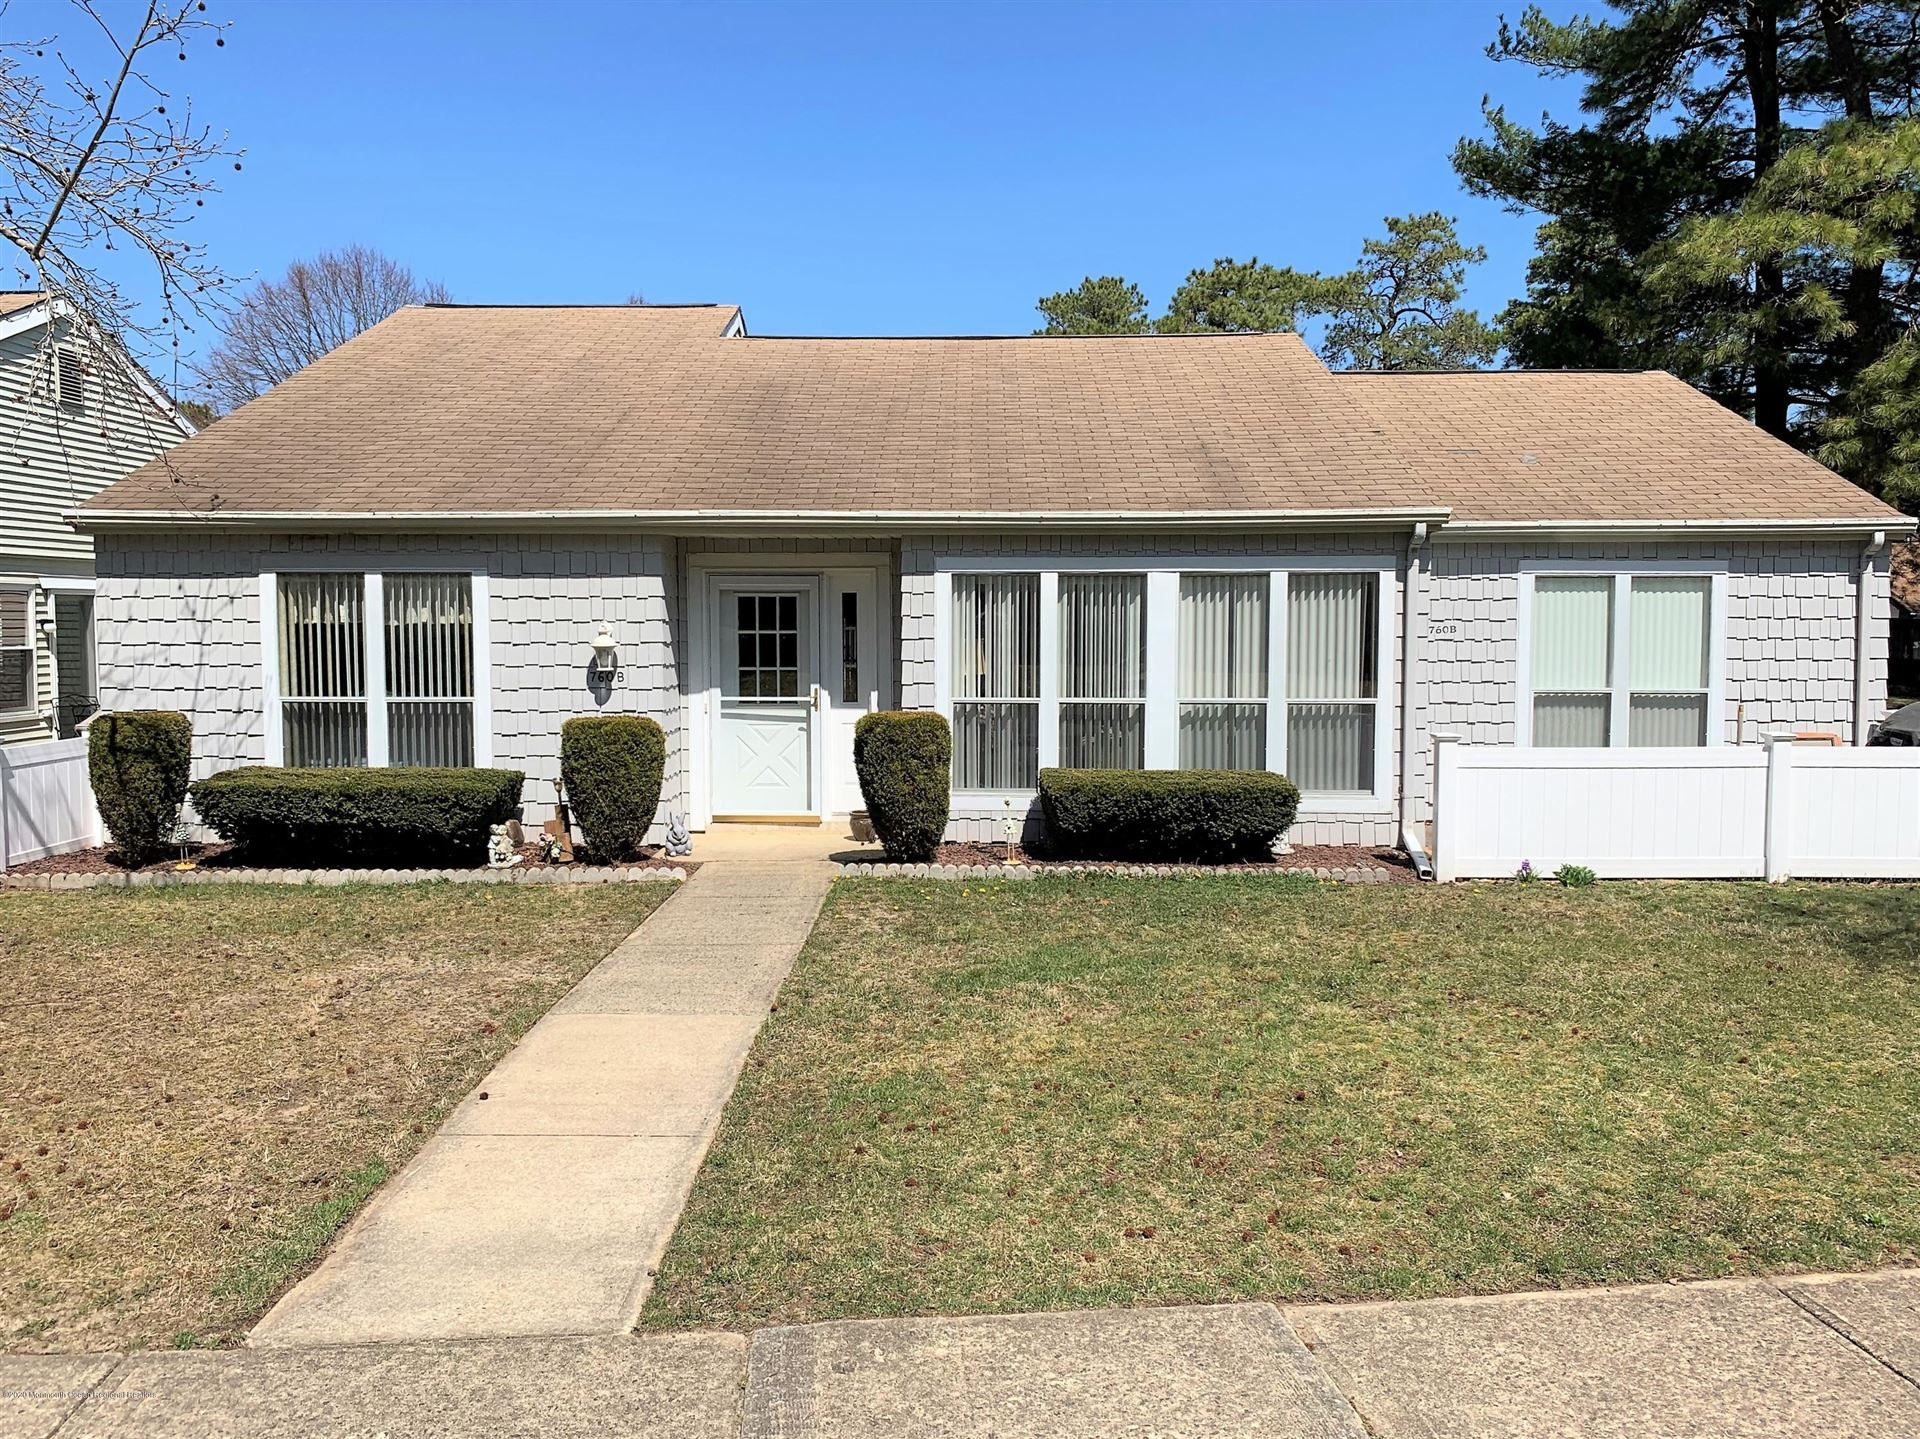 760B Liverpool Circle, Manchester Township, NJ 08759 - #: 22017874